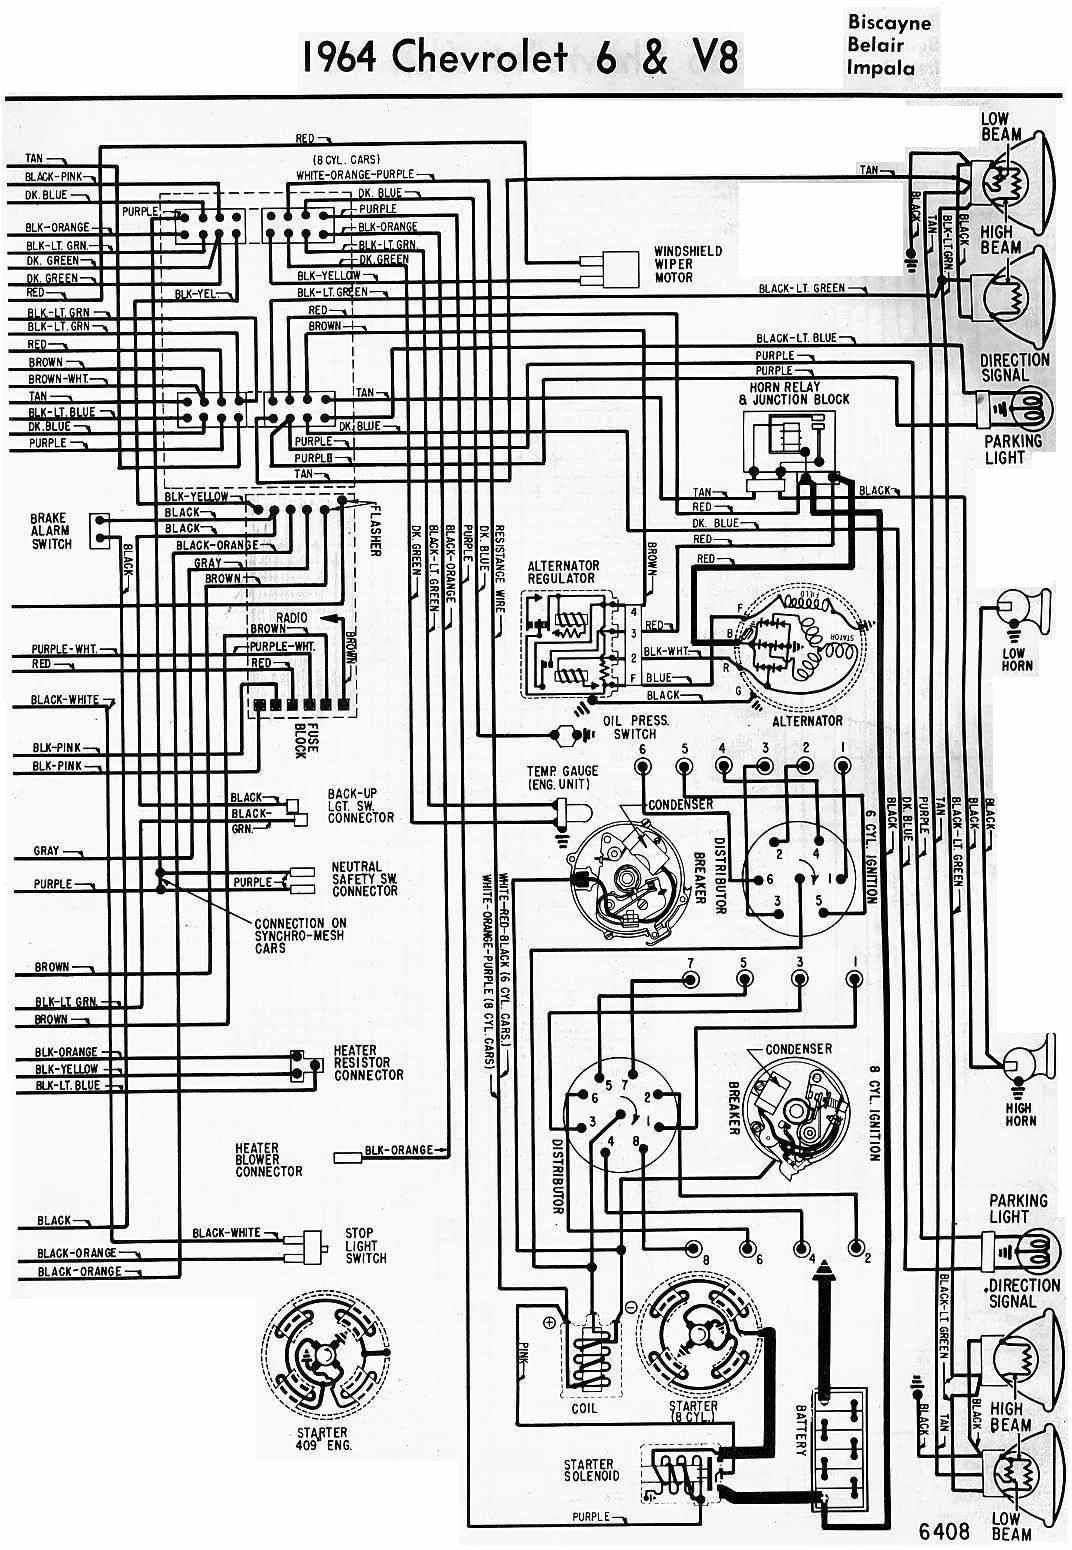 1964 Pontiac Wiring Diagram Free For You 1971 Firebird Imala Schematic Diagrams Rh 8 Koch Foerderbandtrommeln De